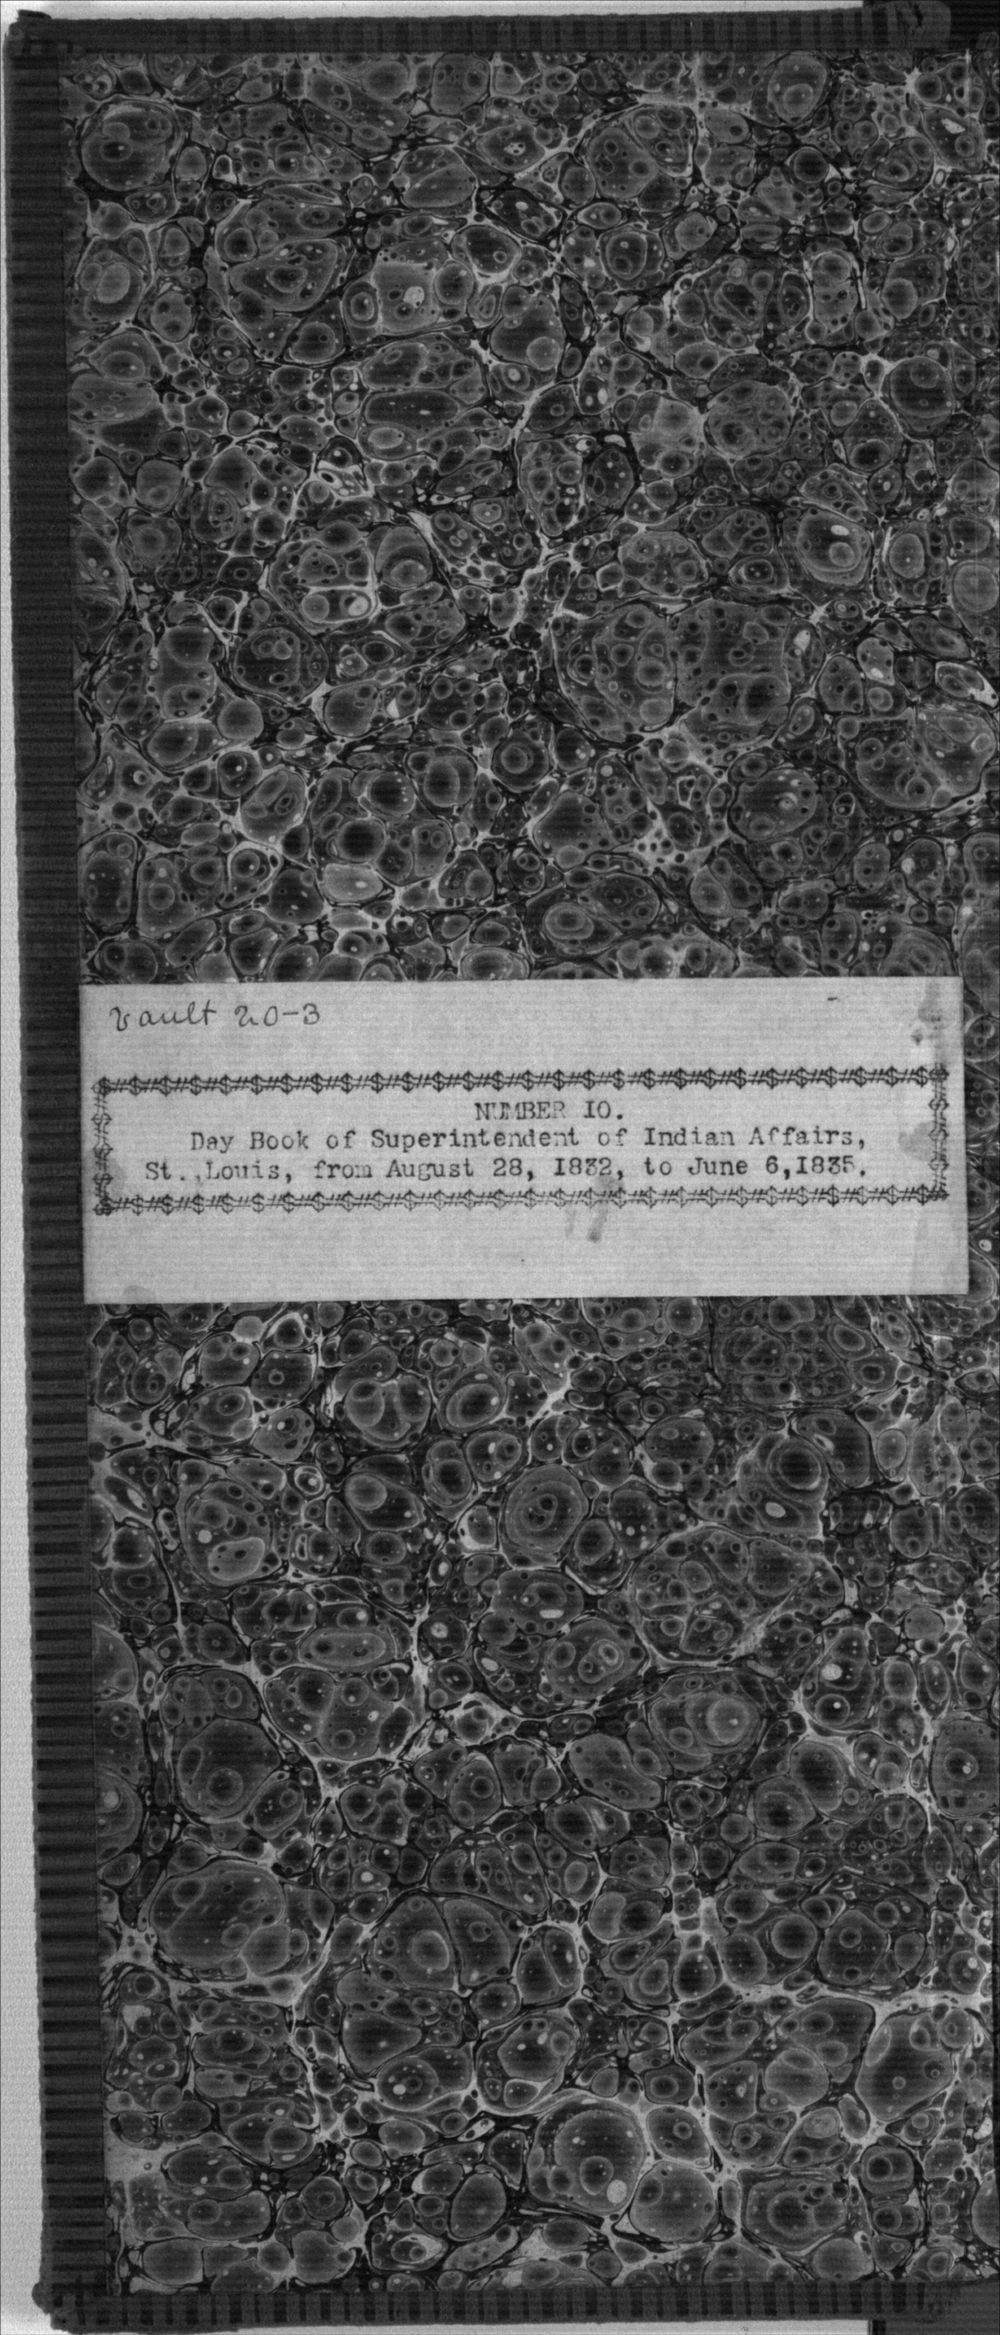 United States Office of Indian Affairs, Central Superintendency, St. Louis, Missouri. Volume 10, Daybook - Inside Front Cover